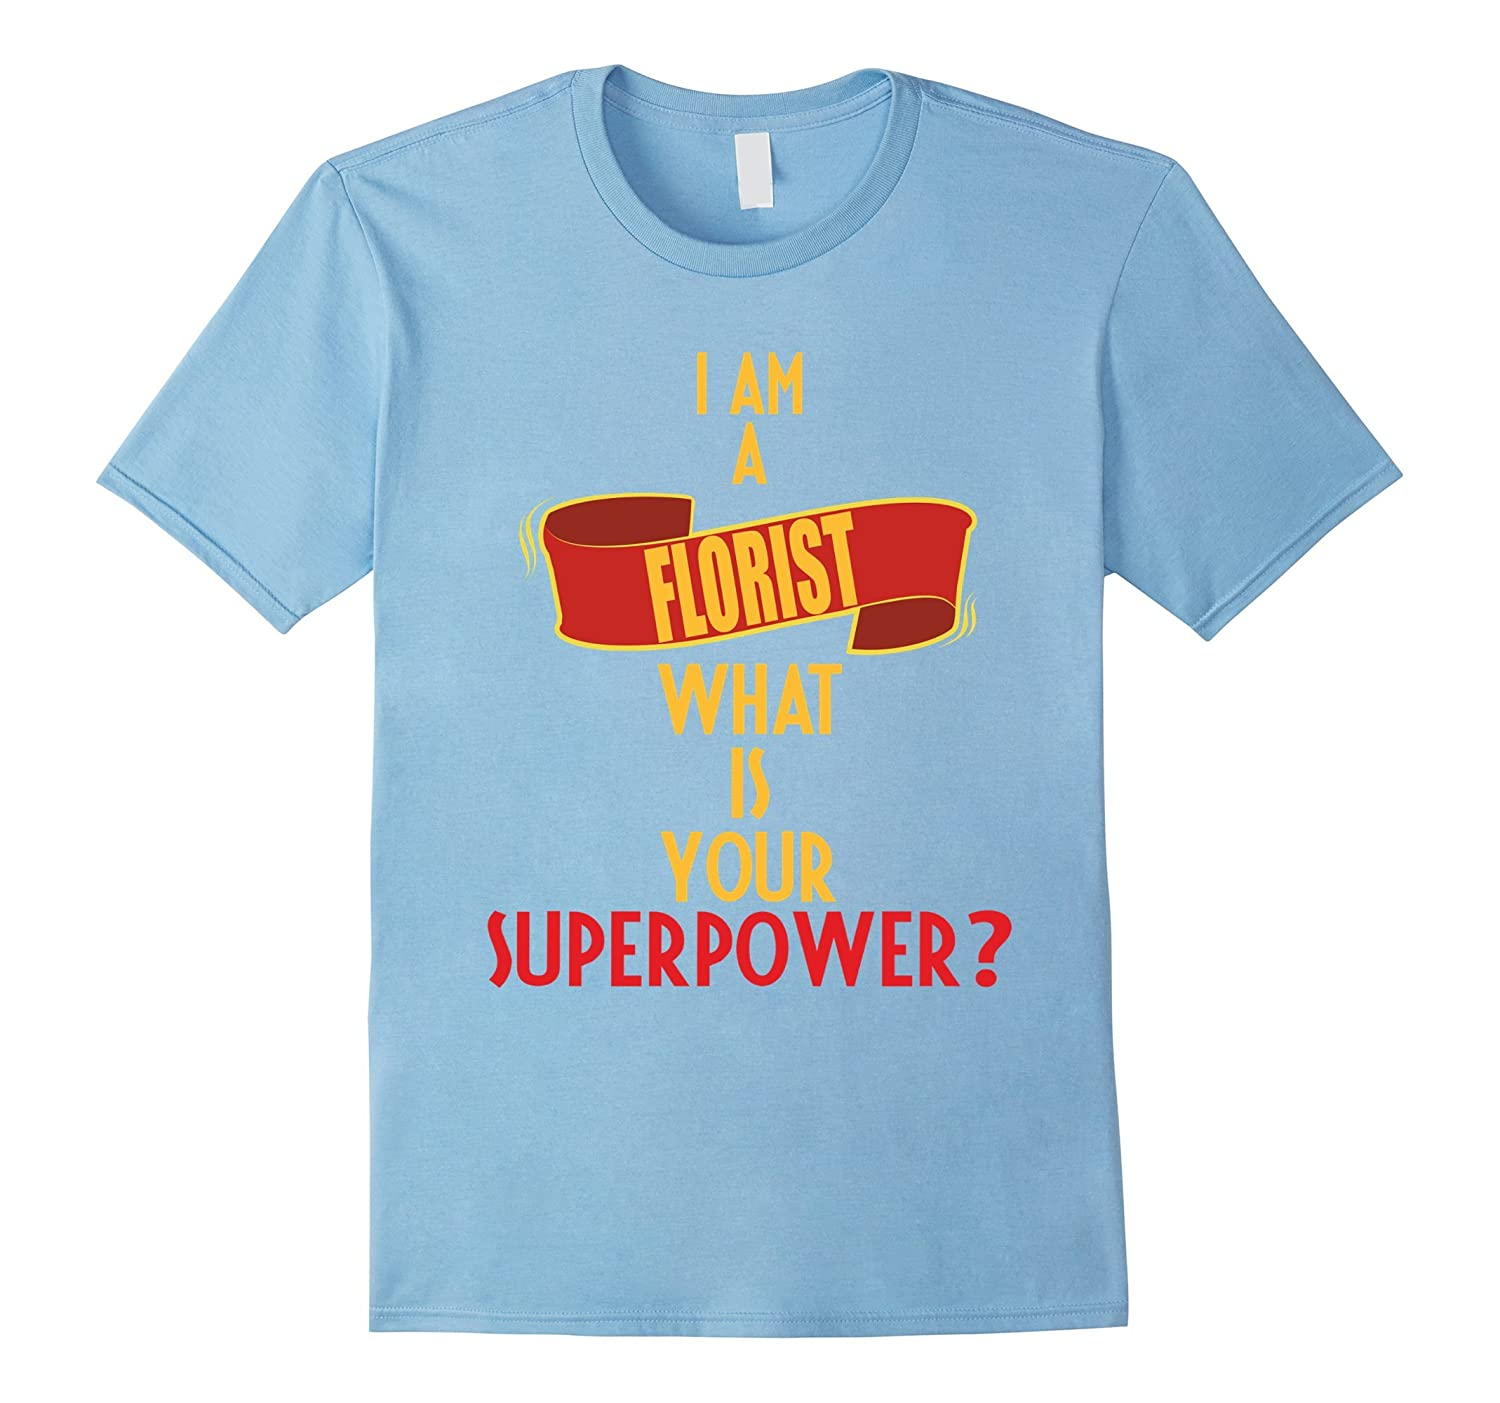 Florist T-shirt - I am a Florist what is your superpower-PL